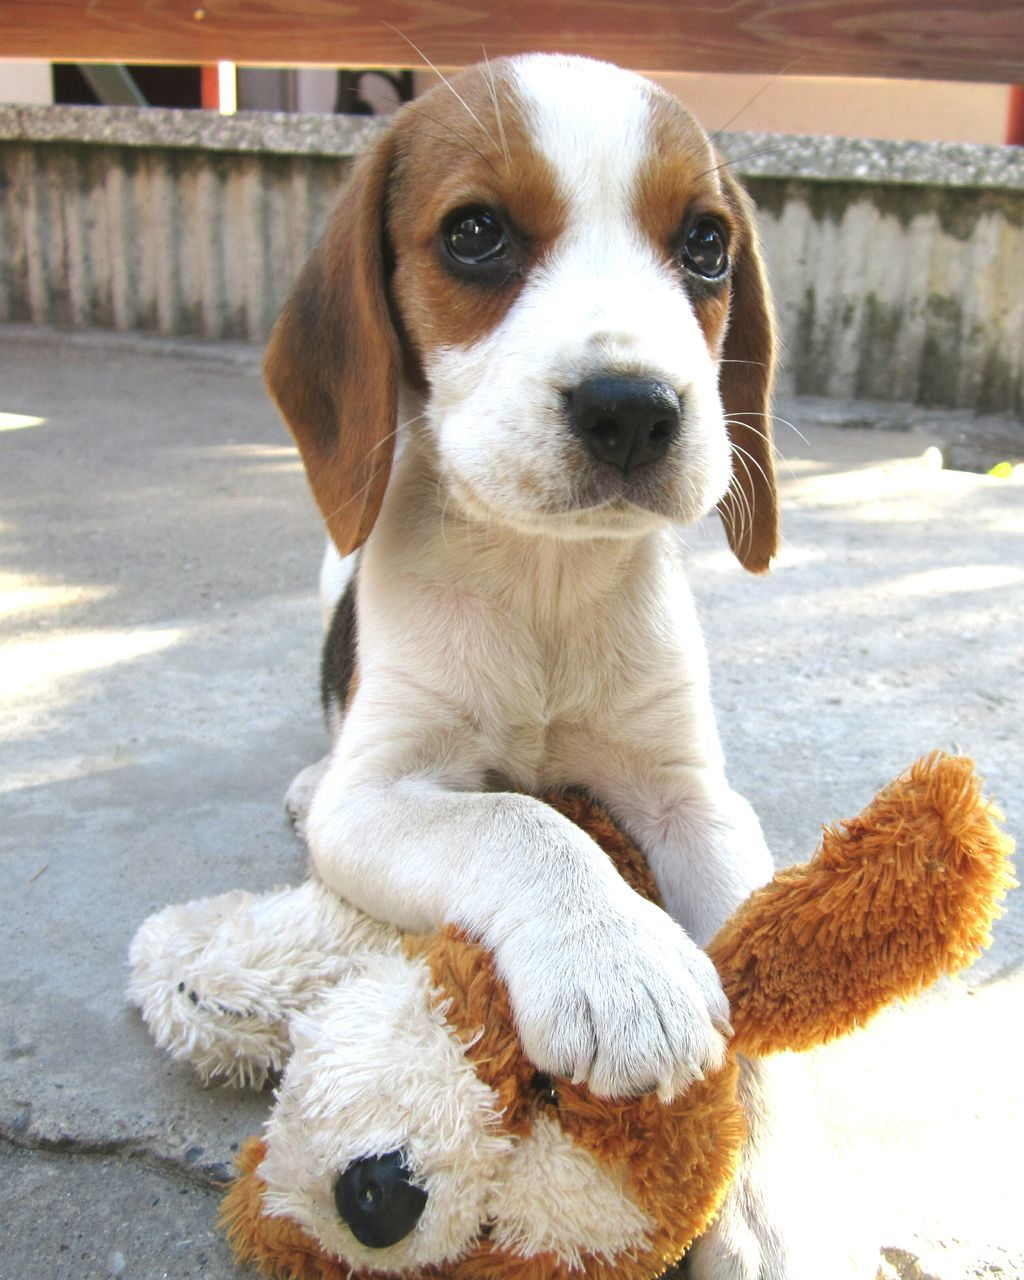 dog, pets, one animal, domestic animals, animal themes, looking at camera, outdoors, mammal, portrait, day, no people, close-up, beagle